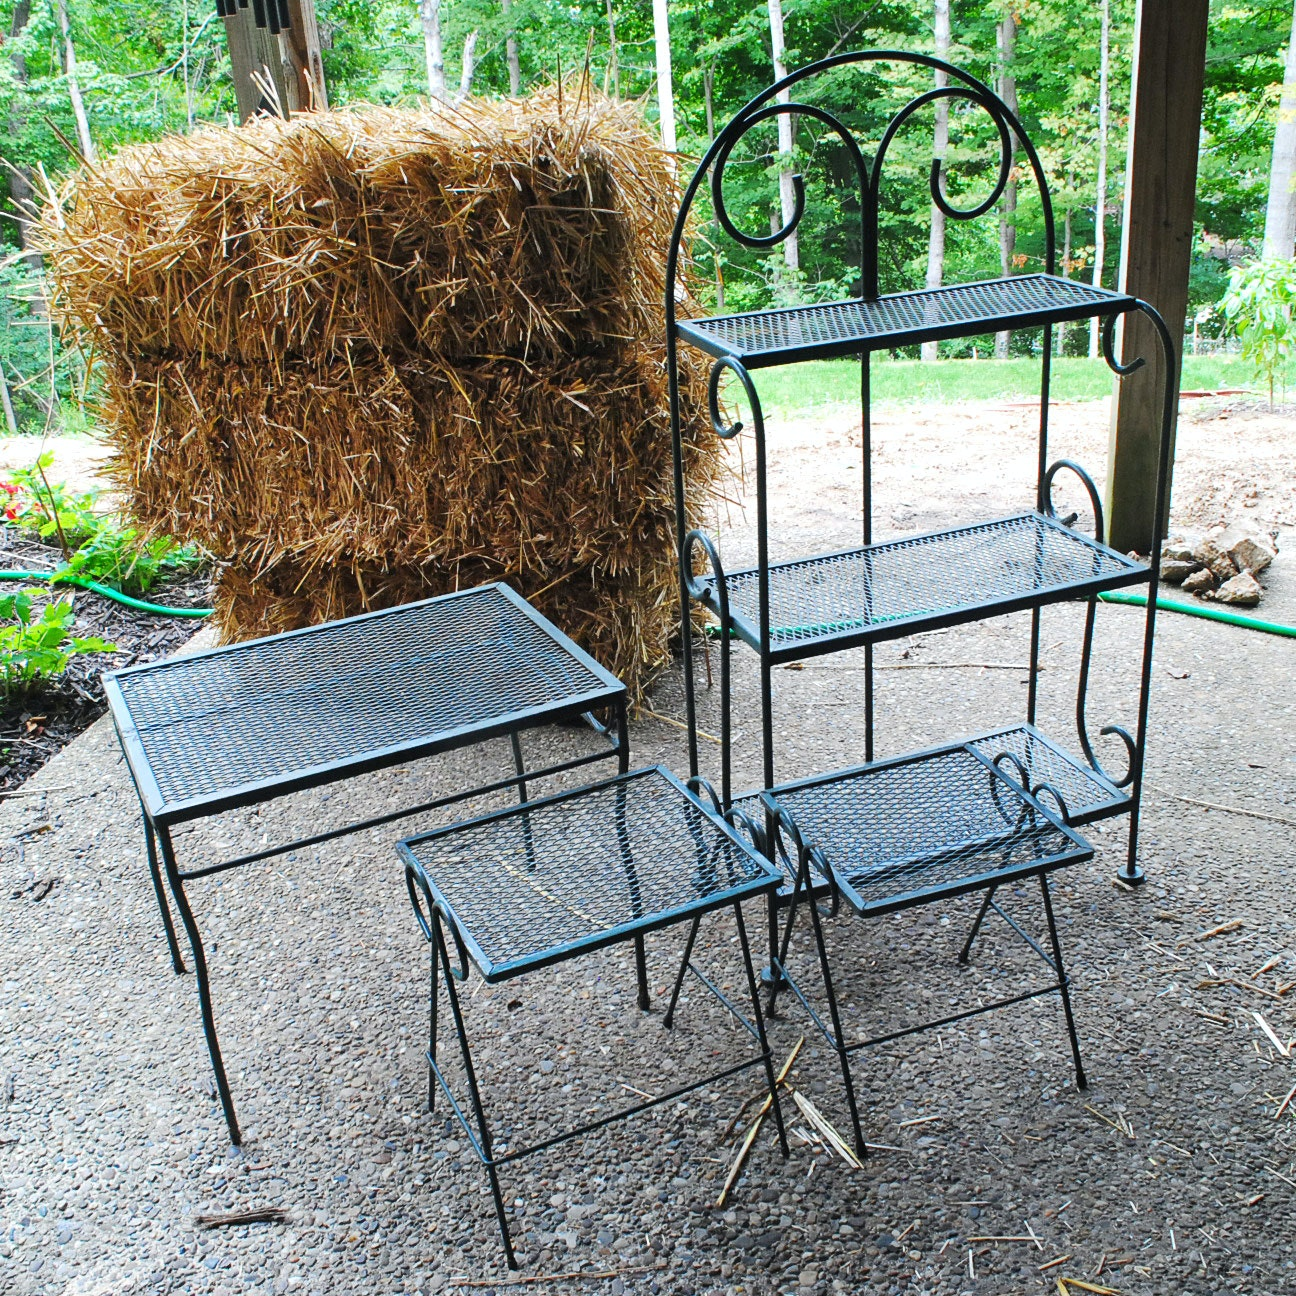 Set of Outdoor Side Tables or Plant Stands